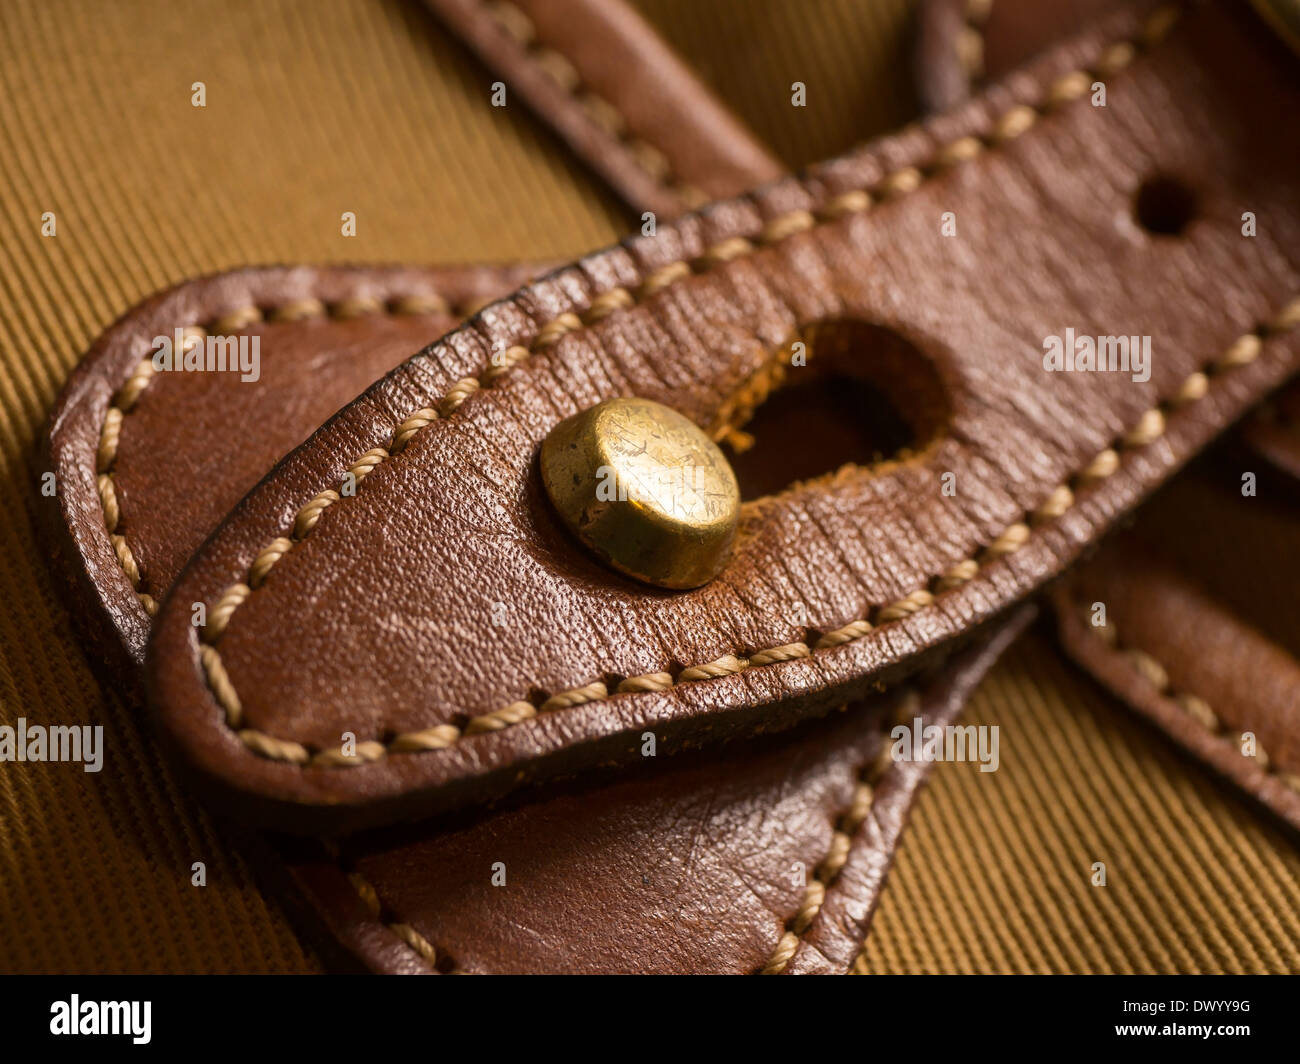 A hand stitched leather strap and buckle on a canvas camera bag. - Stock Image